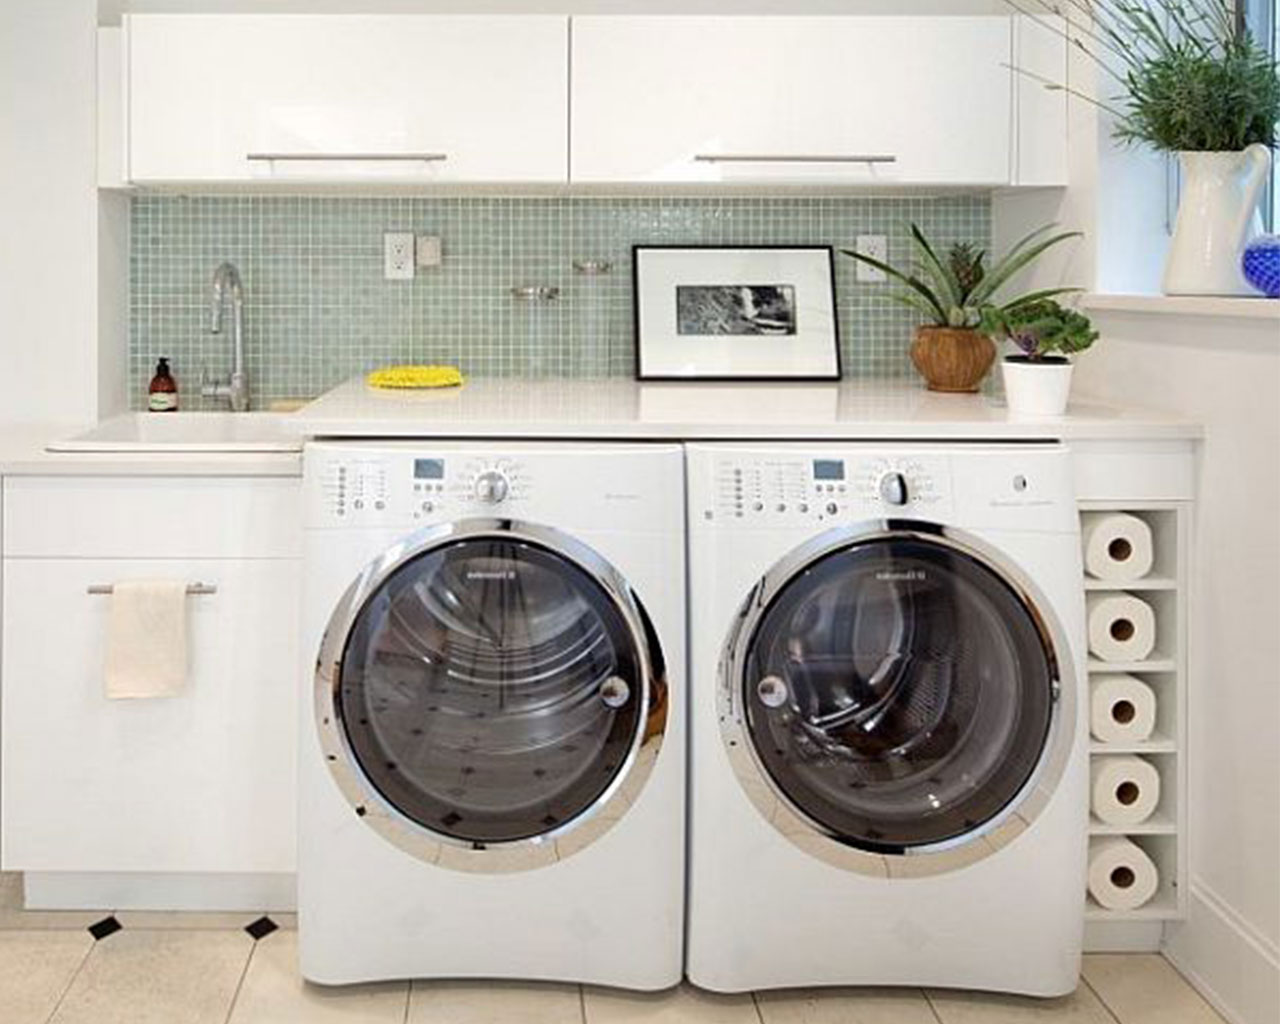 Modern-Laundry-Room-Ideas-With-Washbowl-And-White-Storage-Cool-Interior-Design-Laundry-Room-Ideas-For-Your-Inspiration